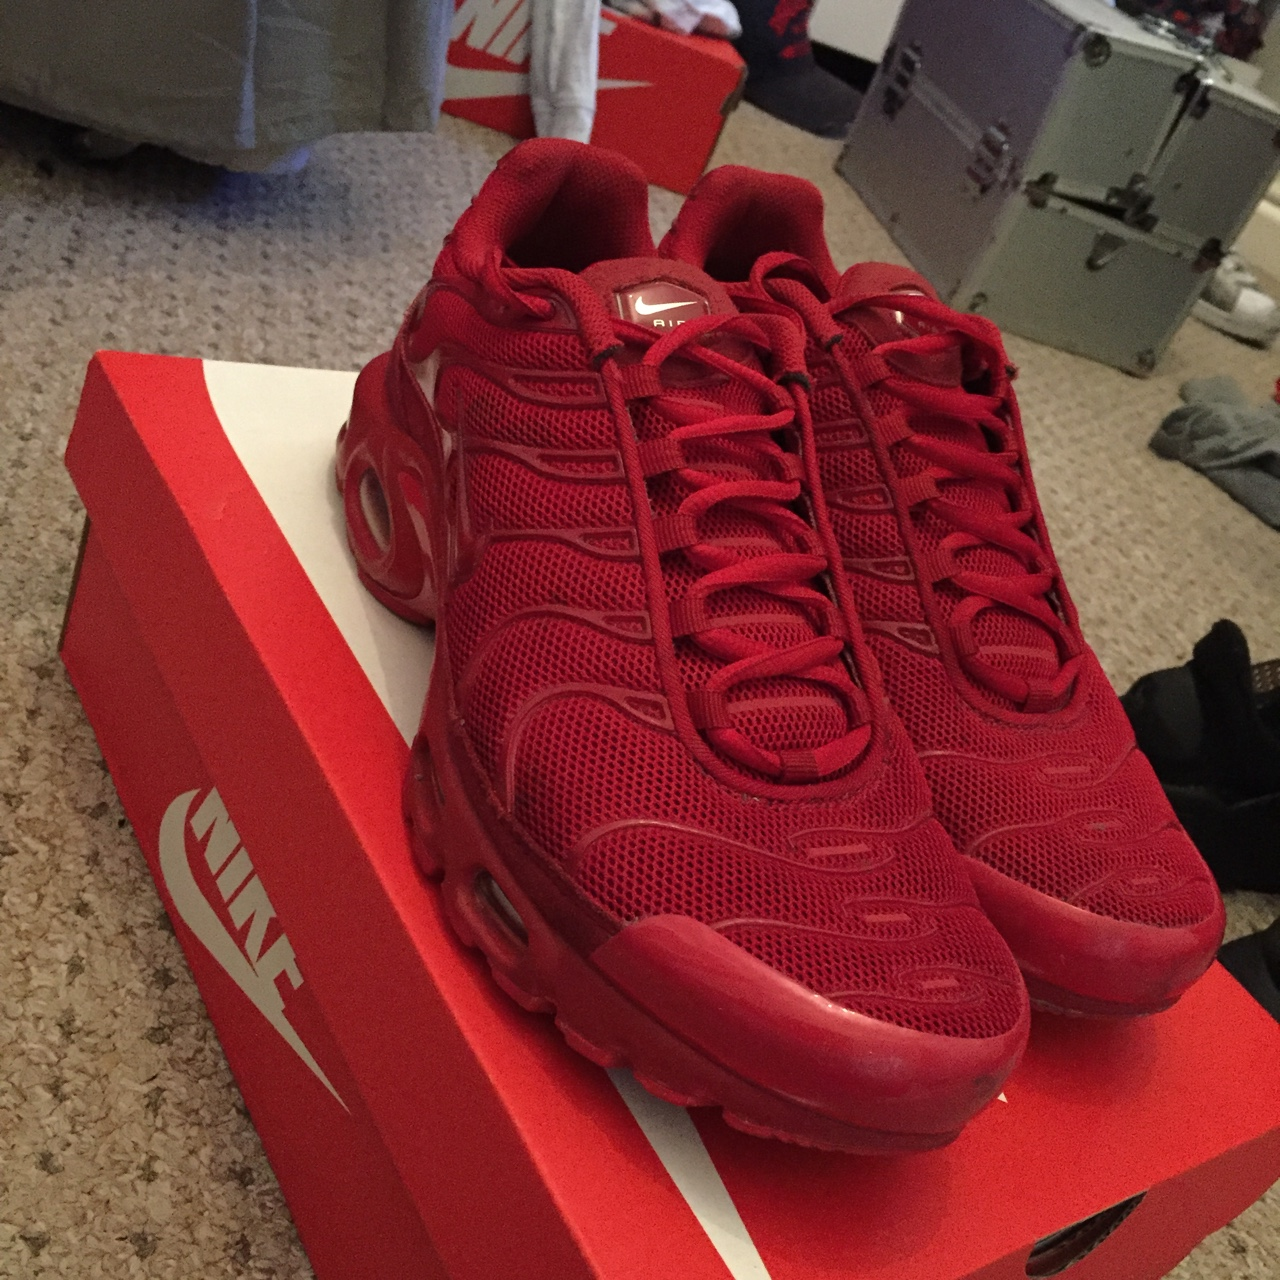 attractive price quite nice classic fit All red Nike tns still in perfect condition - Depop